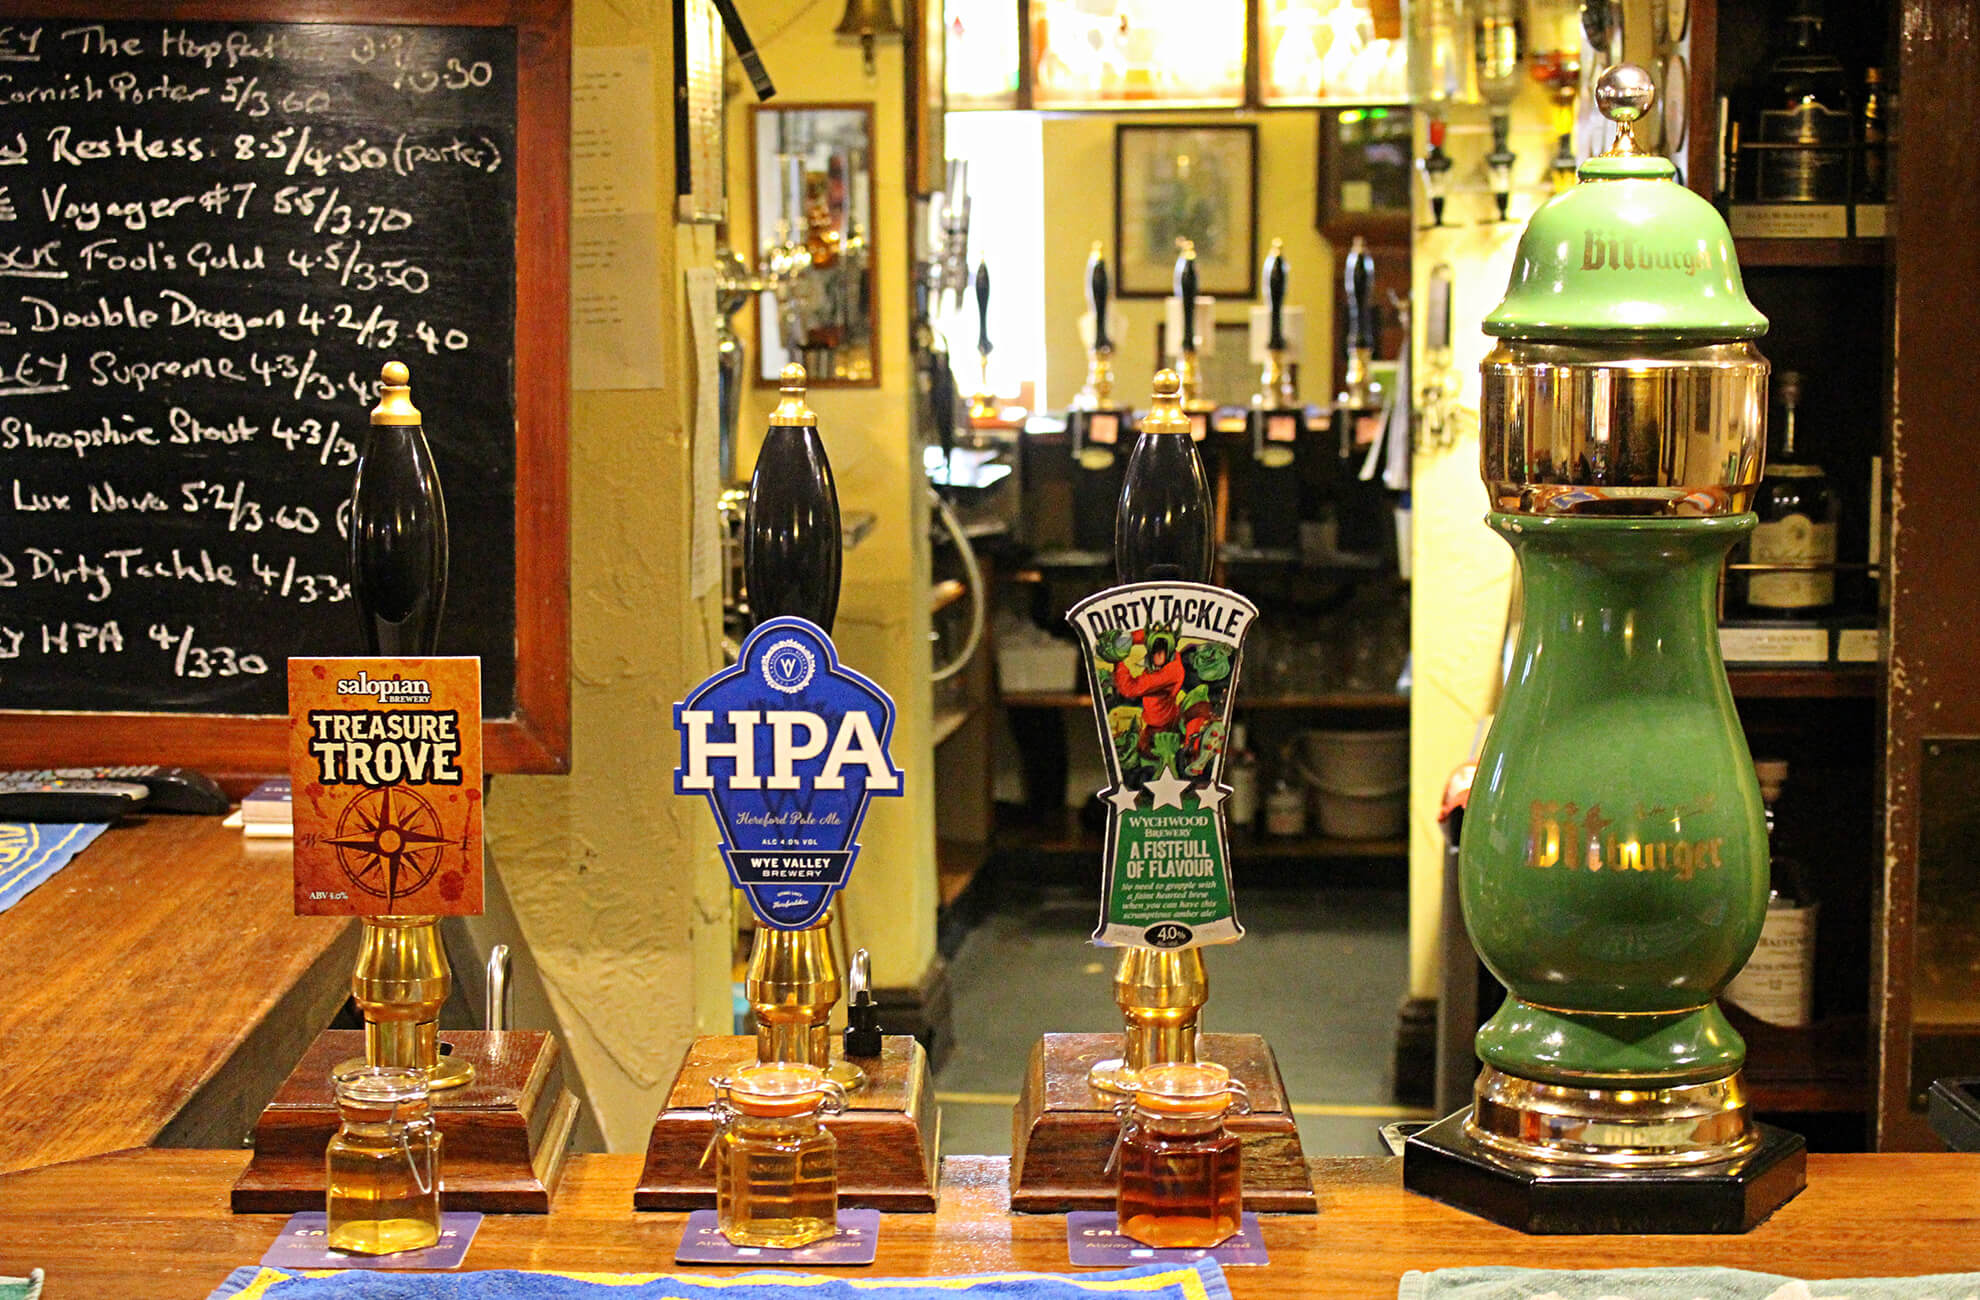 Only a short drive from Combermere Abbey In Cheshire is The Bhurtpore Inn pub